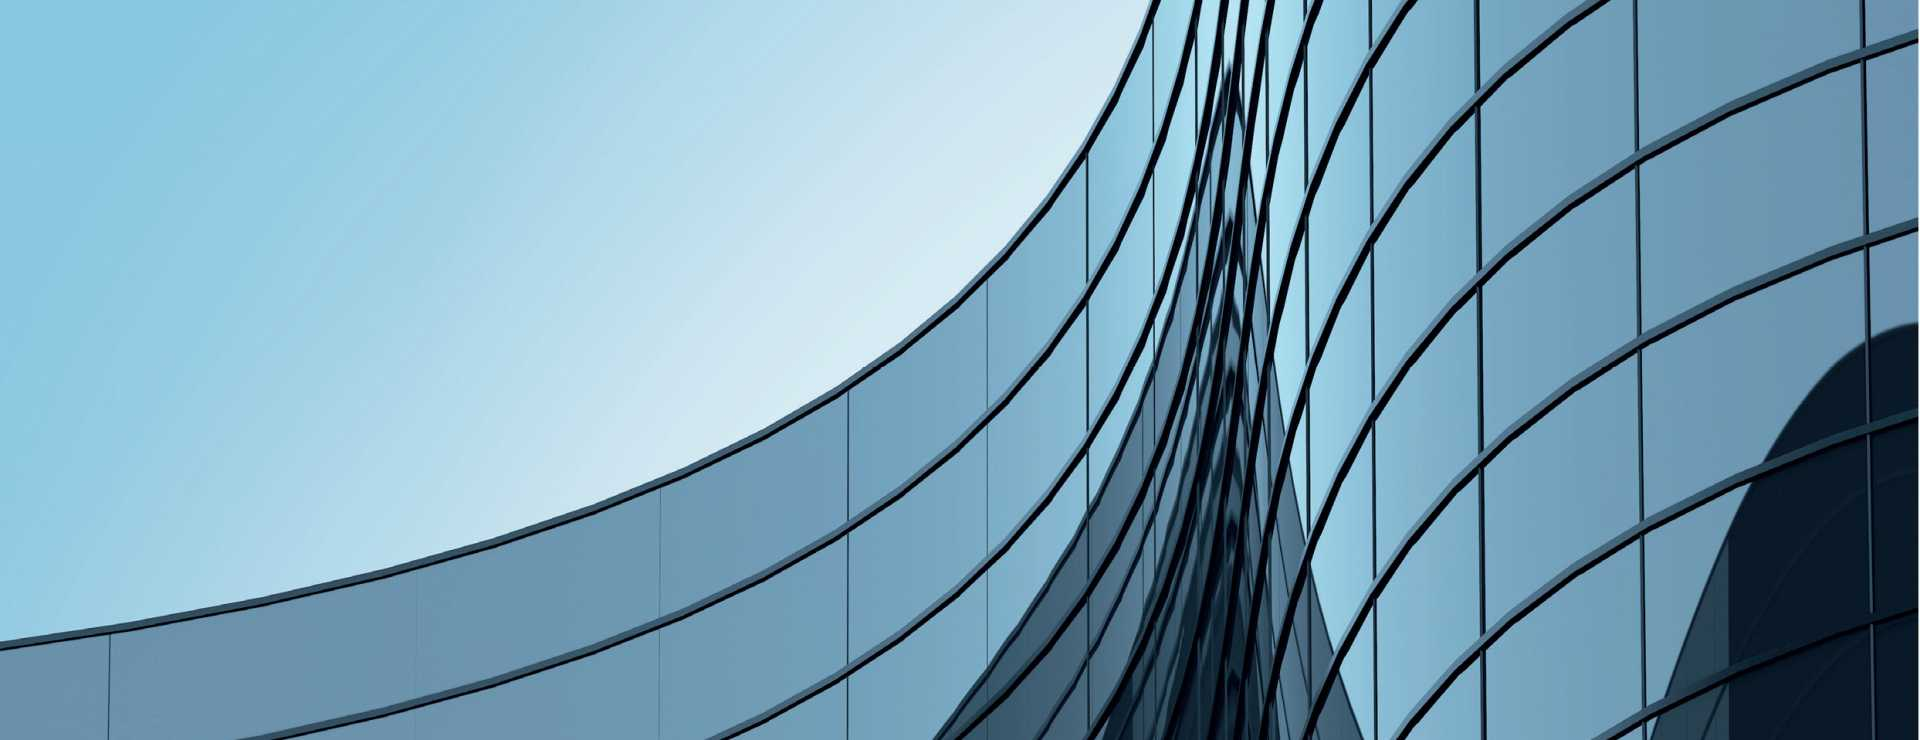 Late stage customisation of curved glass can include additive electronics and sensors.